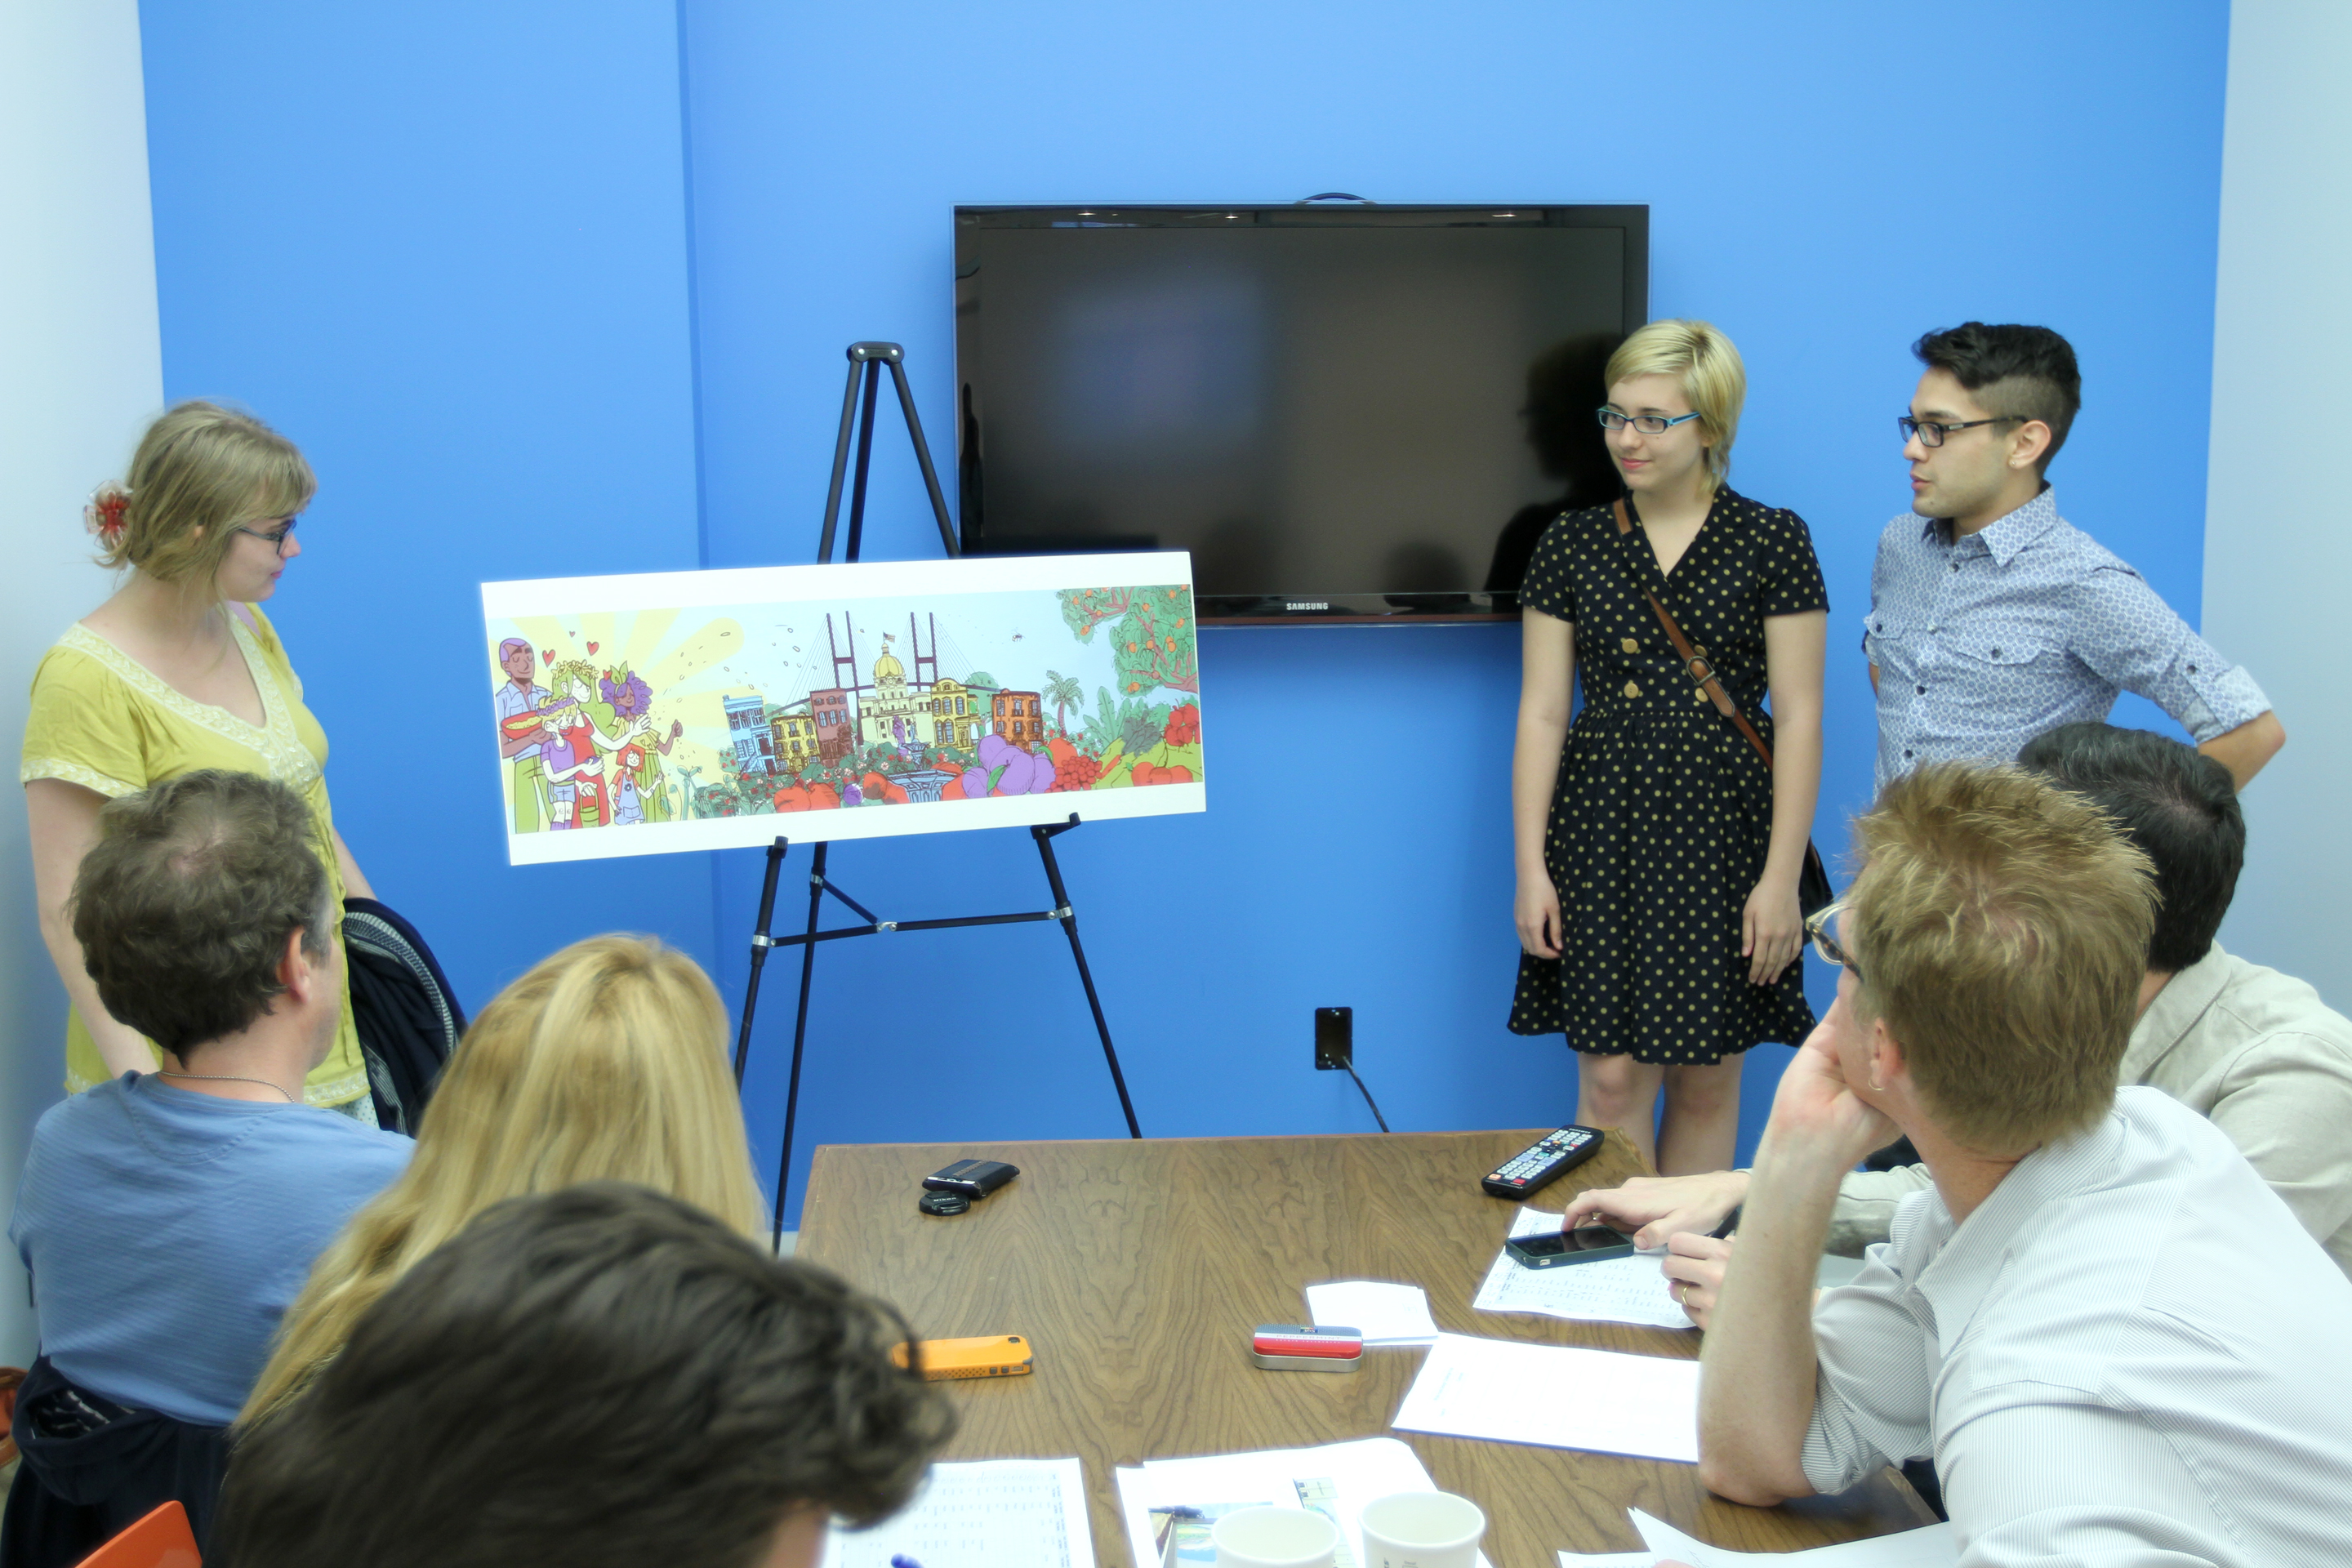 Whole foods mural challenge presentation